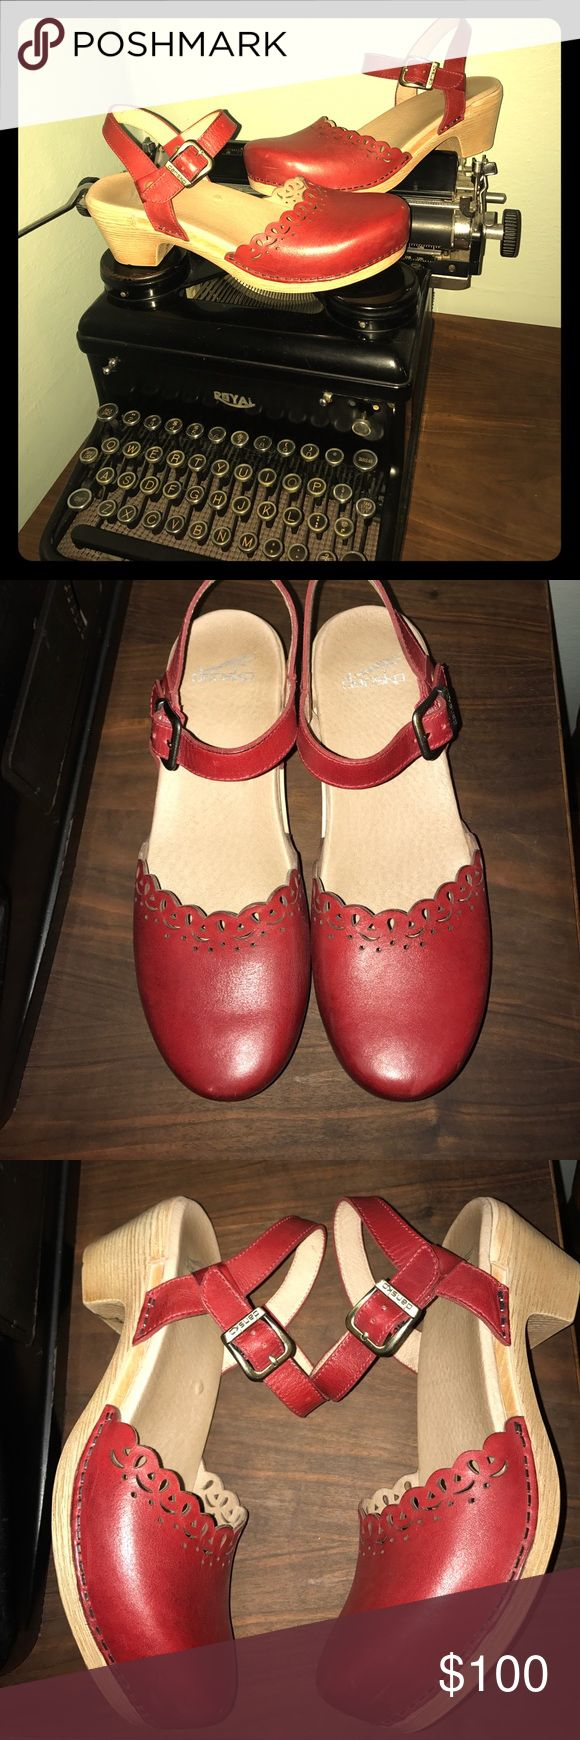 SALE Dansko leather maryjane clogs 39 8.5 8 Only worn twice (they are slightly too big on me). In great shape with a few minor rubs on leather (very subtle). Nice cushioned soles & red leather eyelet uppers. Very minor soil on outsole. There is a slight elevation of padding (a tiny spot) on footbed, see pic, but you can't feel it. I just wanted to mention it. :). These are so comfy & garnered many compliments. I wish they fit!! Leather has been conditioned by a professional. Nonsmoking home…